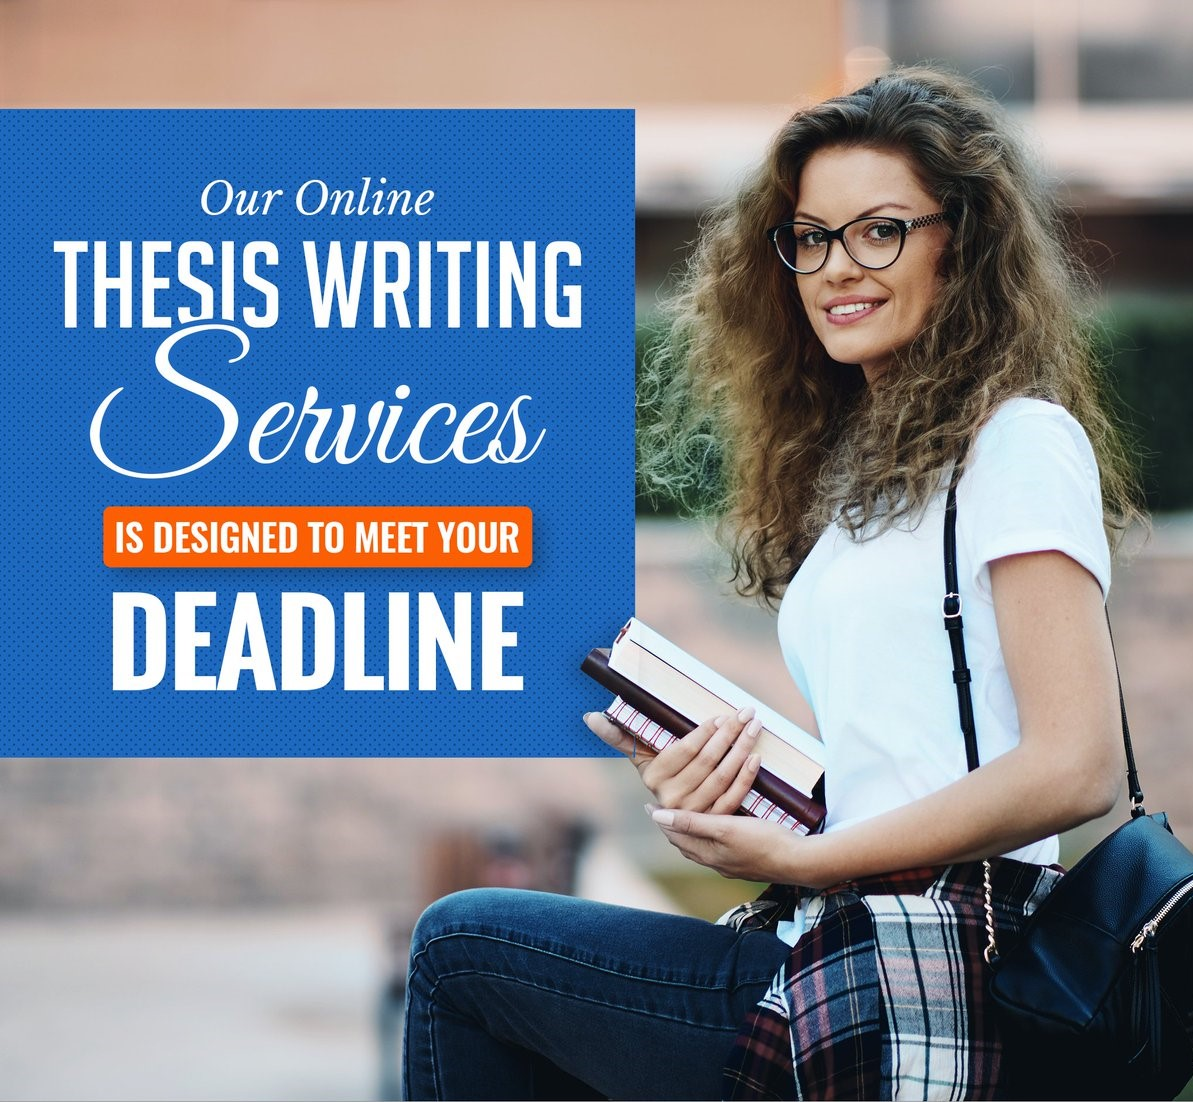 Thesis Writing Services By Top Academic Consultants - Peachy Essay